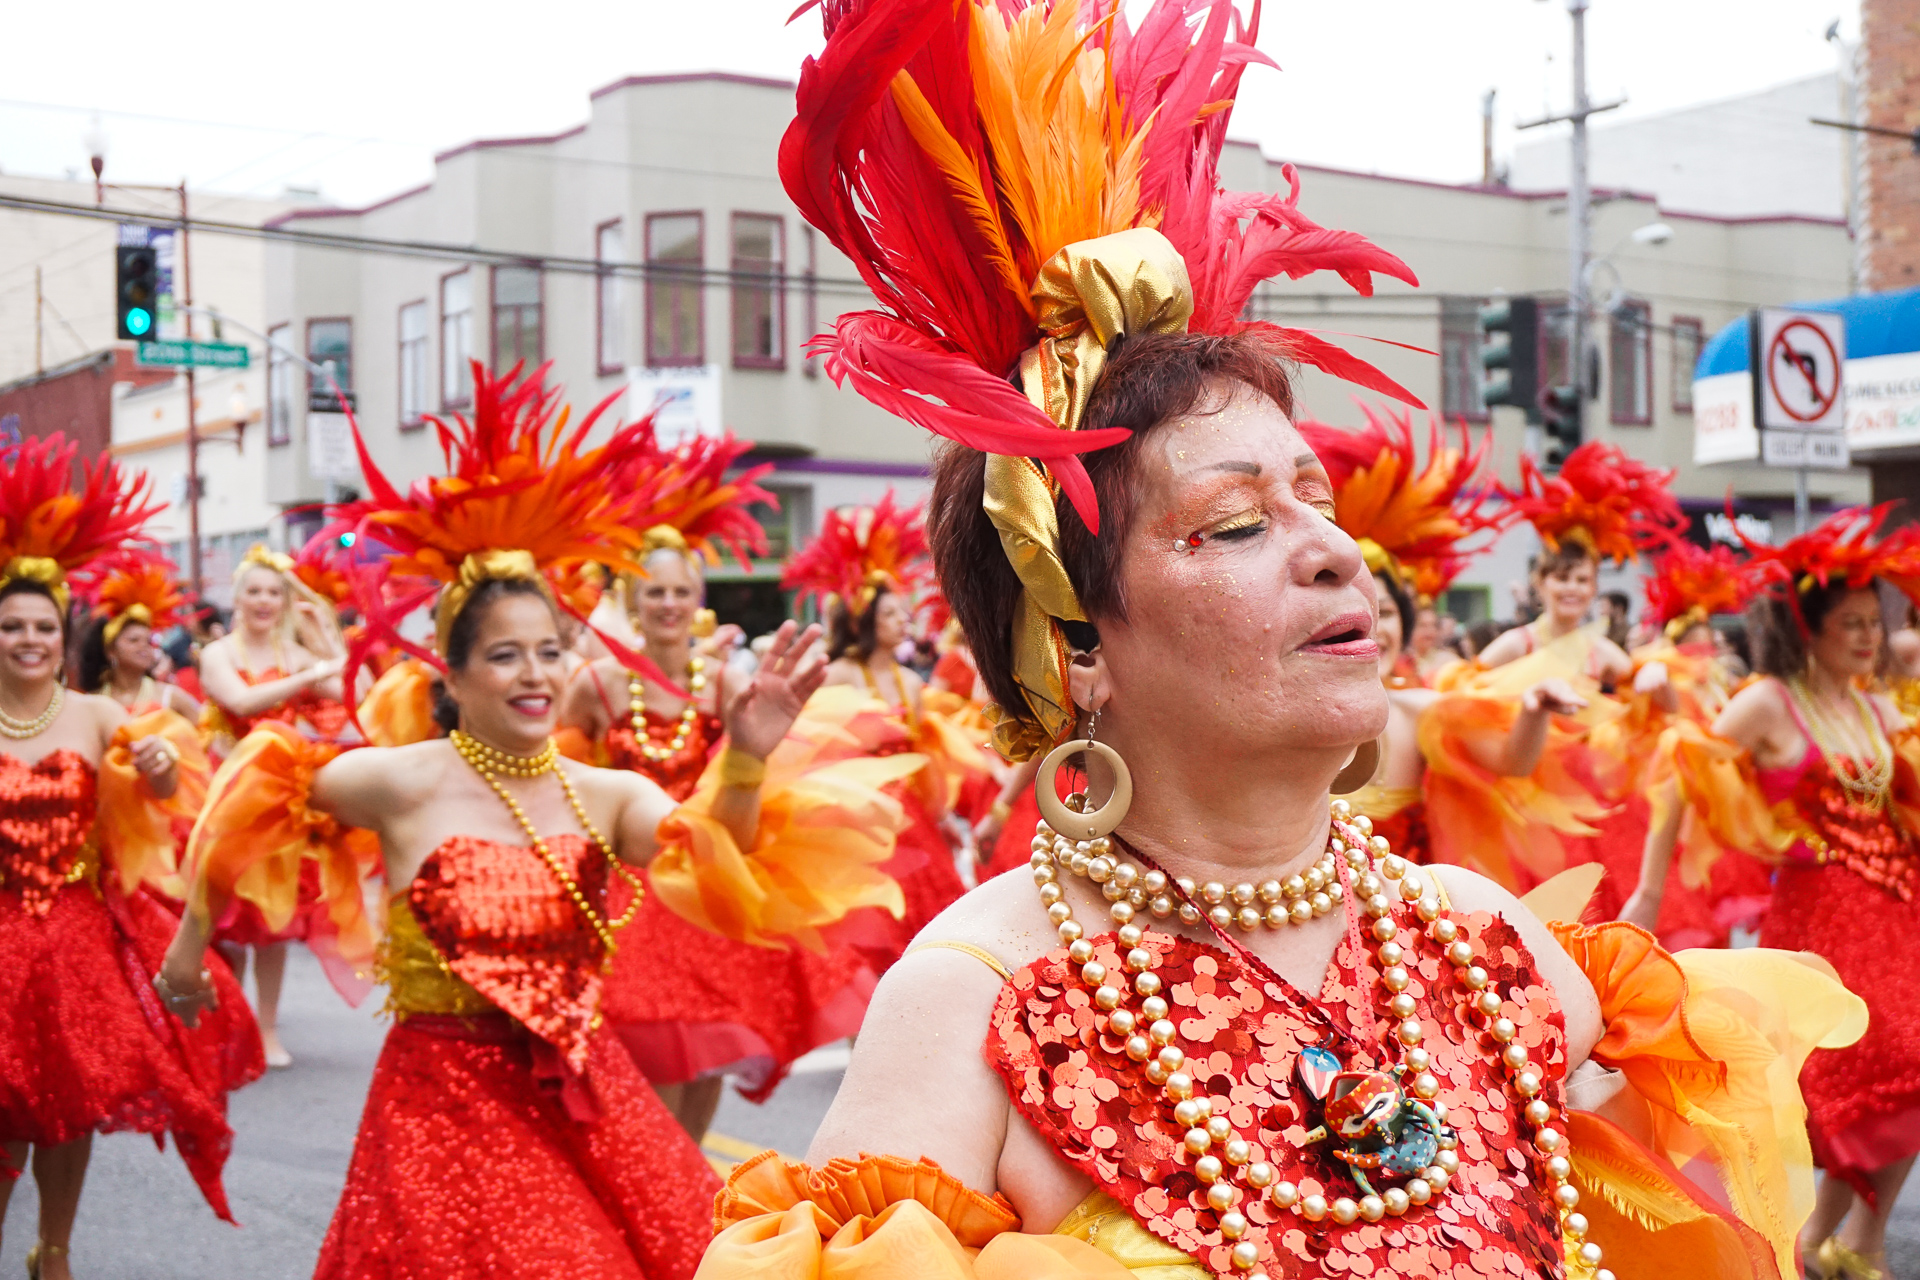 Dancer takes in the moment during the Mission District's Carnaval parade.